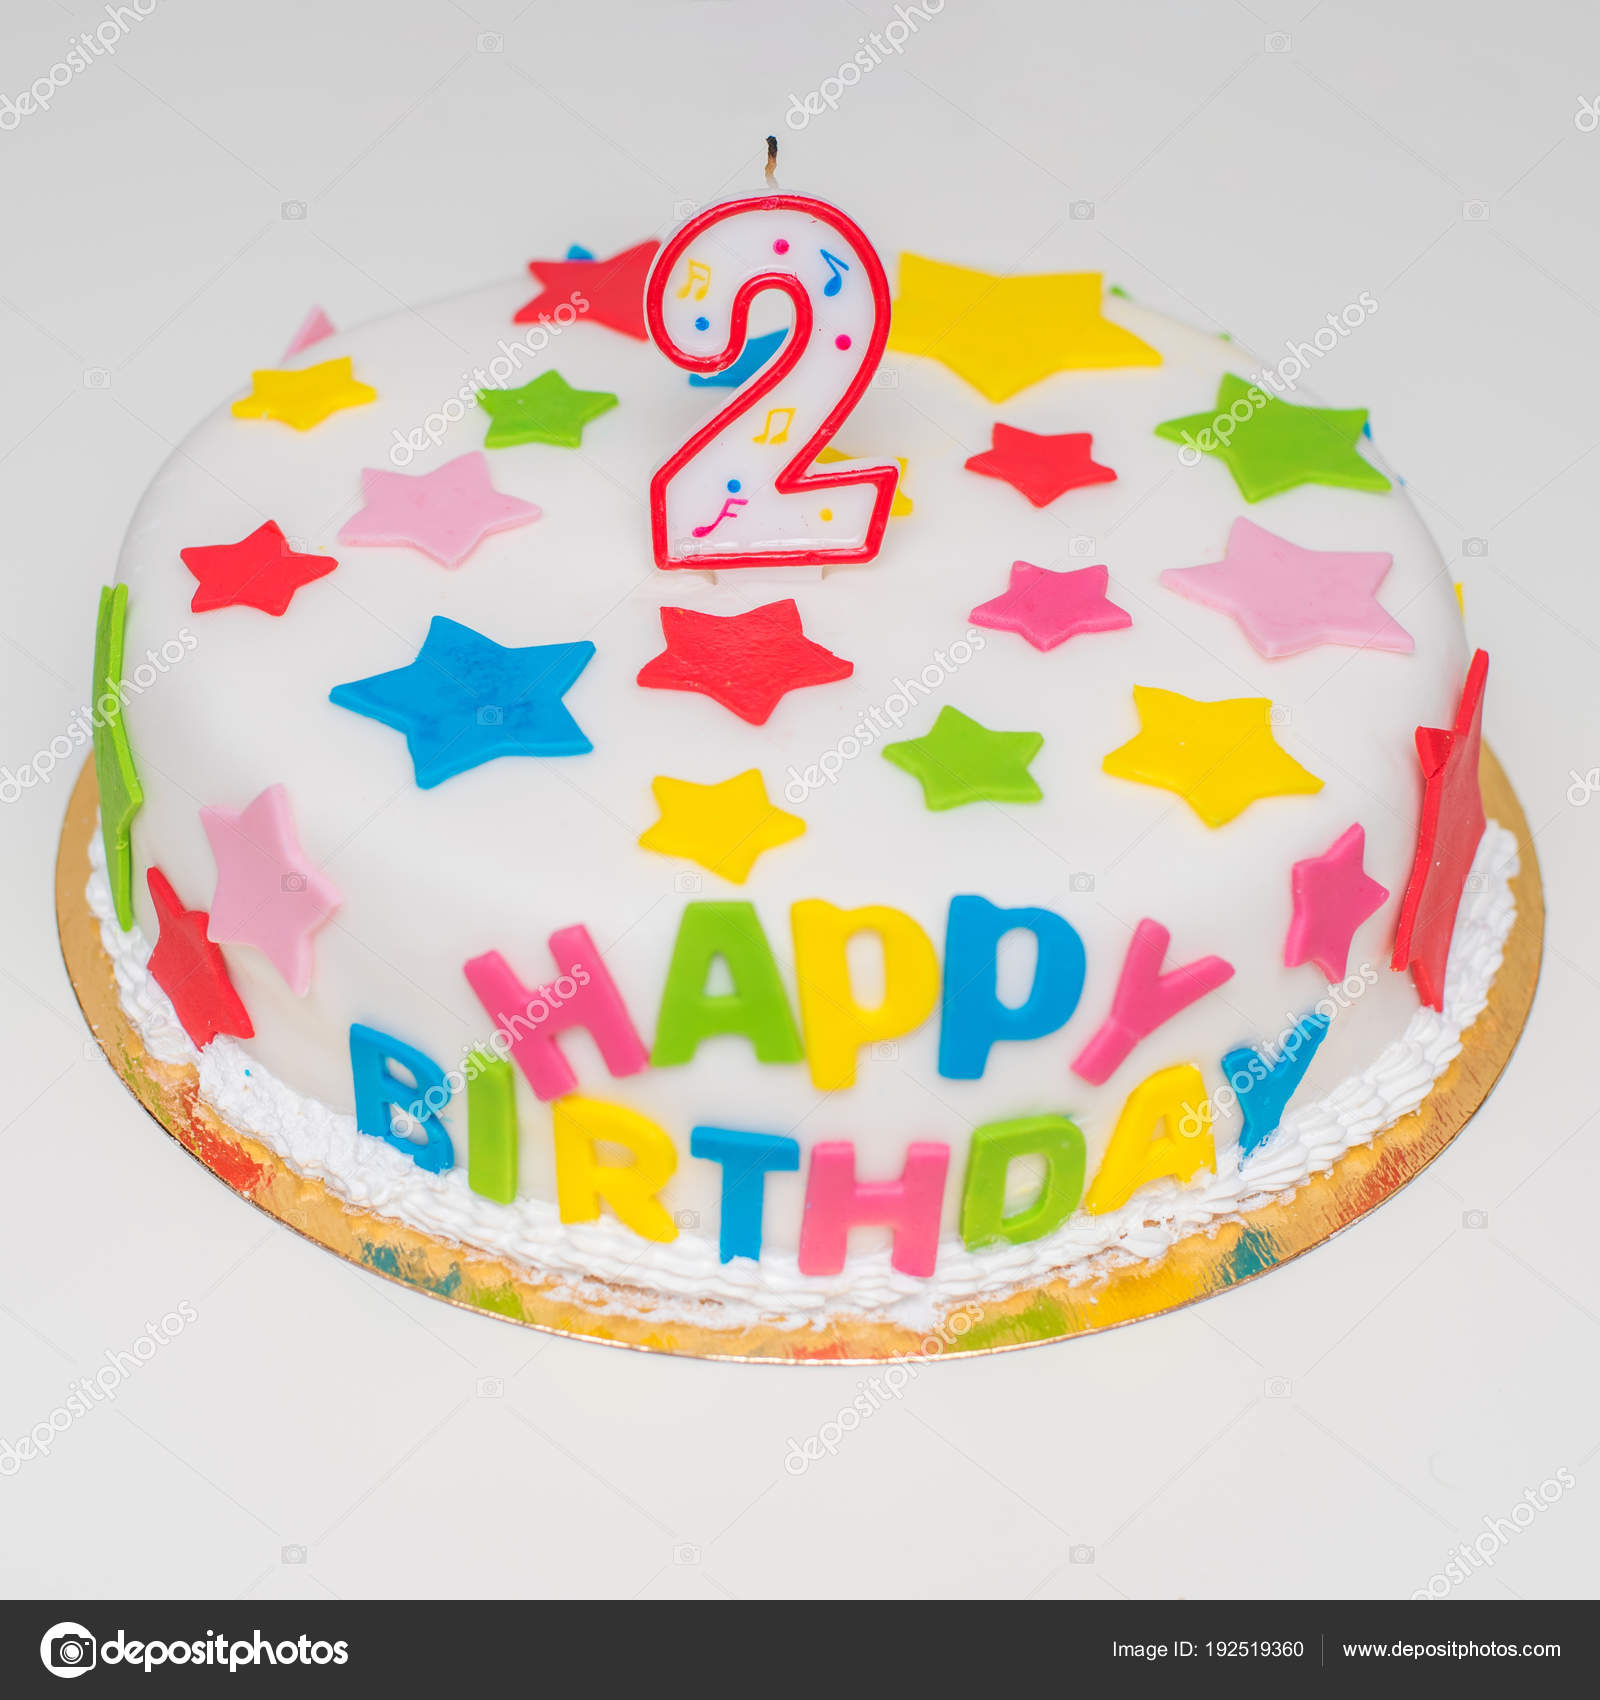 Big Beautiful Cake For A Happy Birthday With Candles In The Form Of Two Stock Image